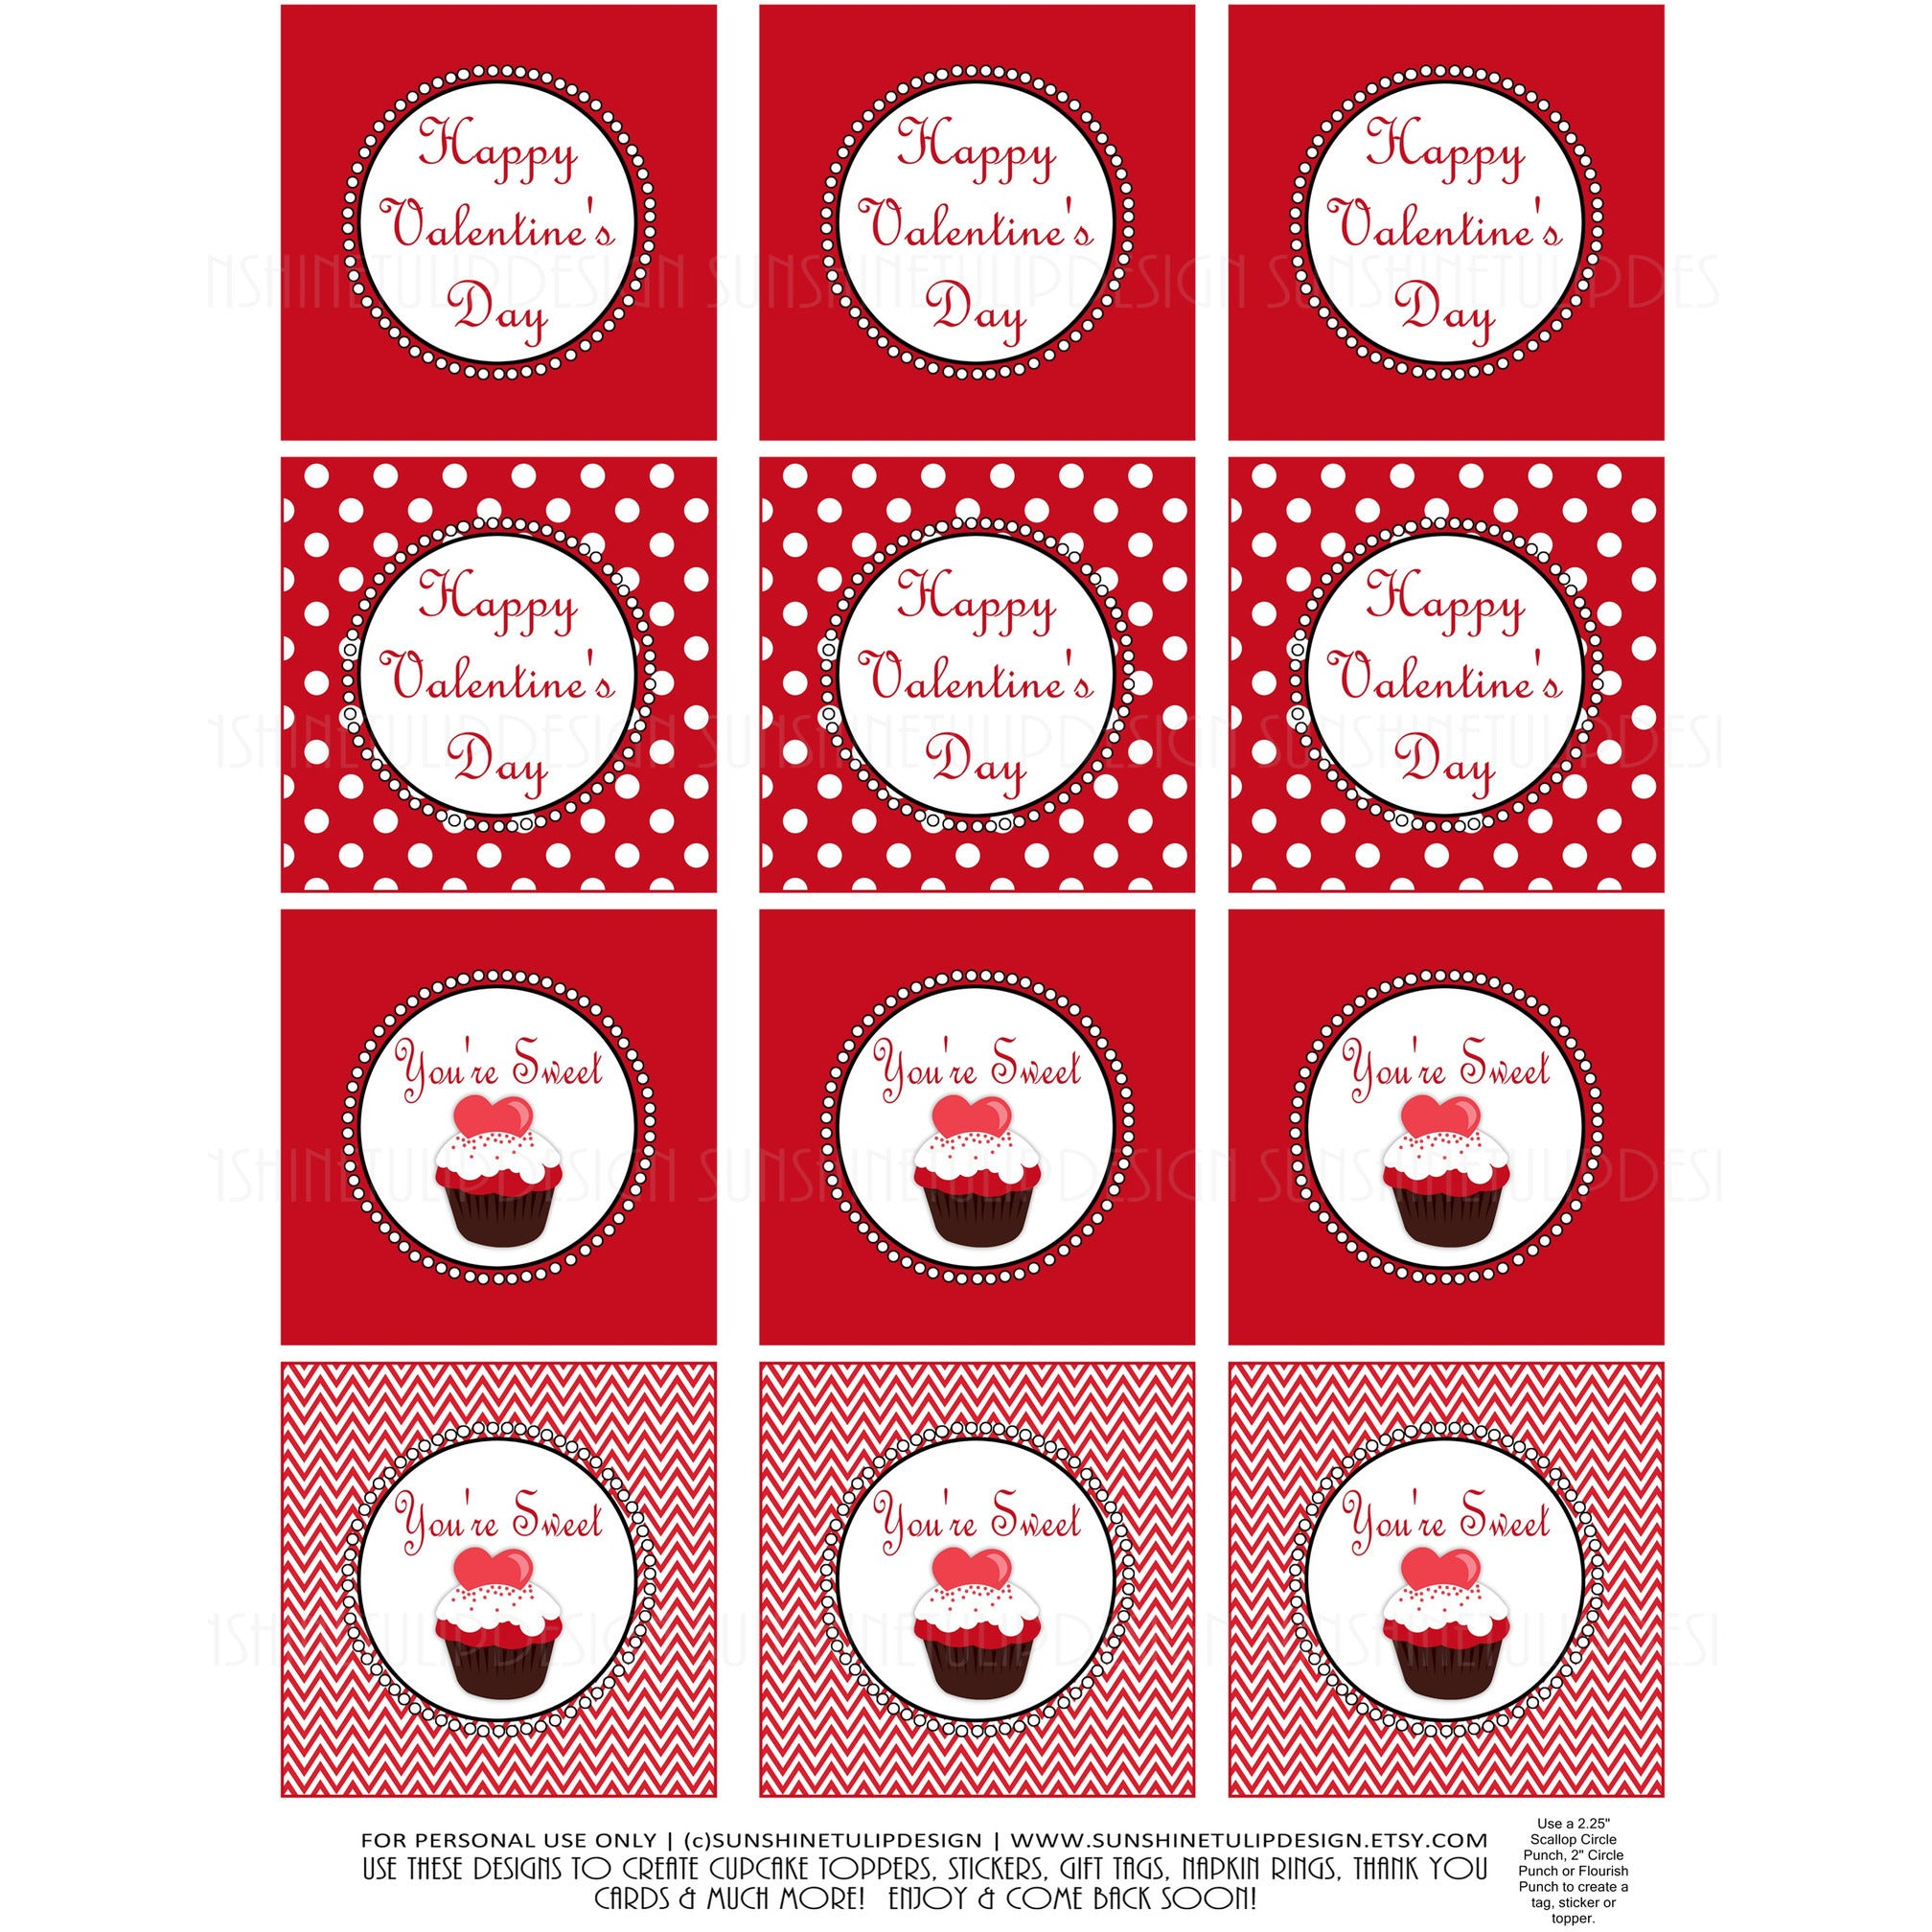 picture relating to Valentines Gift Tags Printable called Printable Valentines Working day Present Tags, Youre Lovable Valentines Working day Reward Tags as a result of SUNSHINETULIPDESIGN